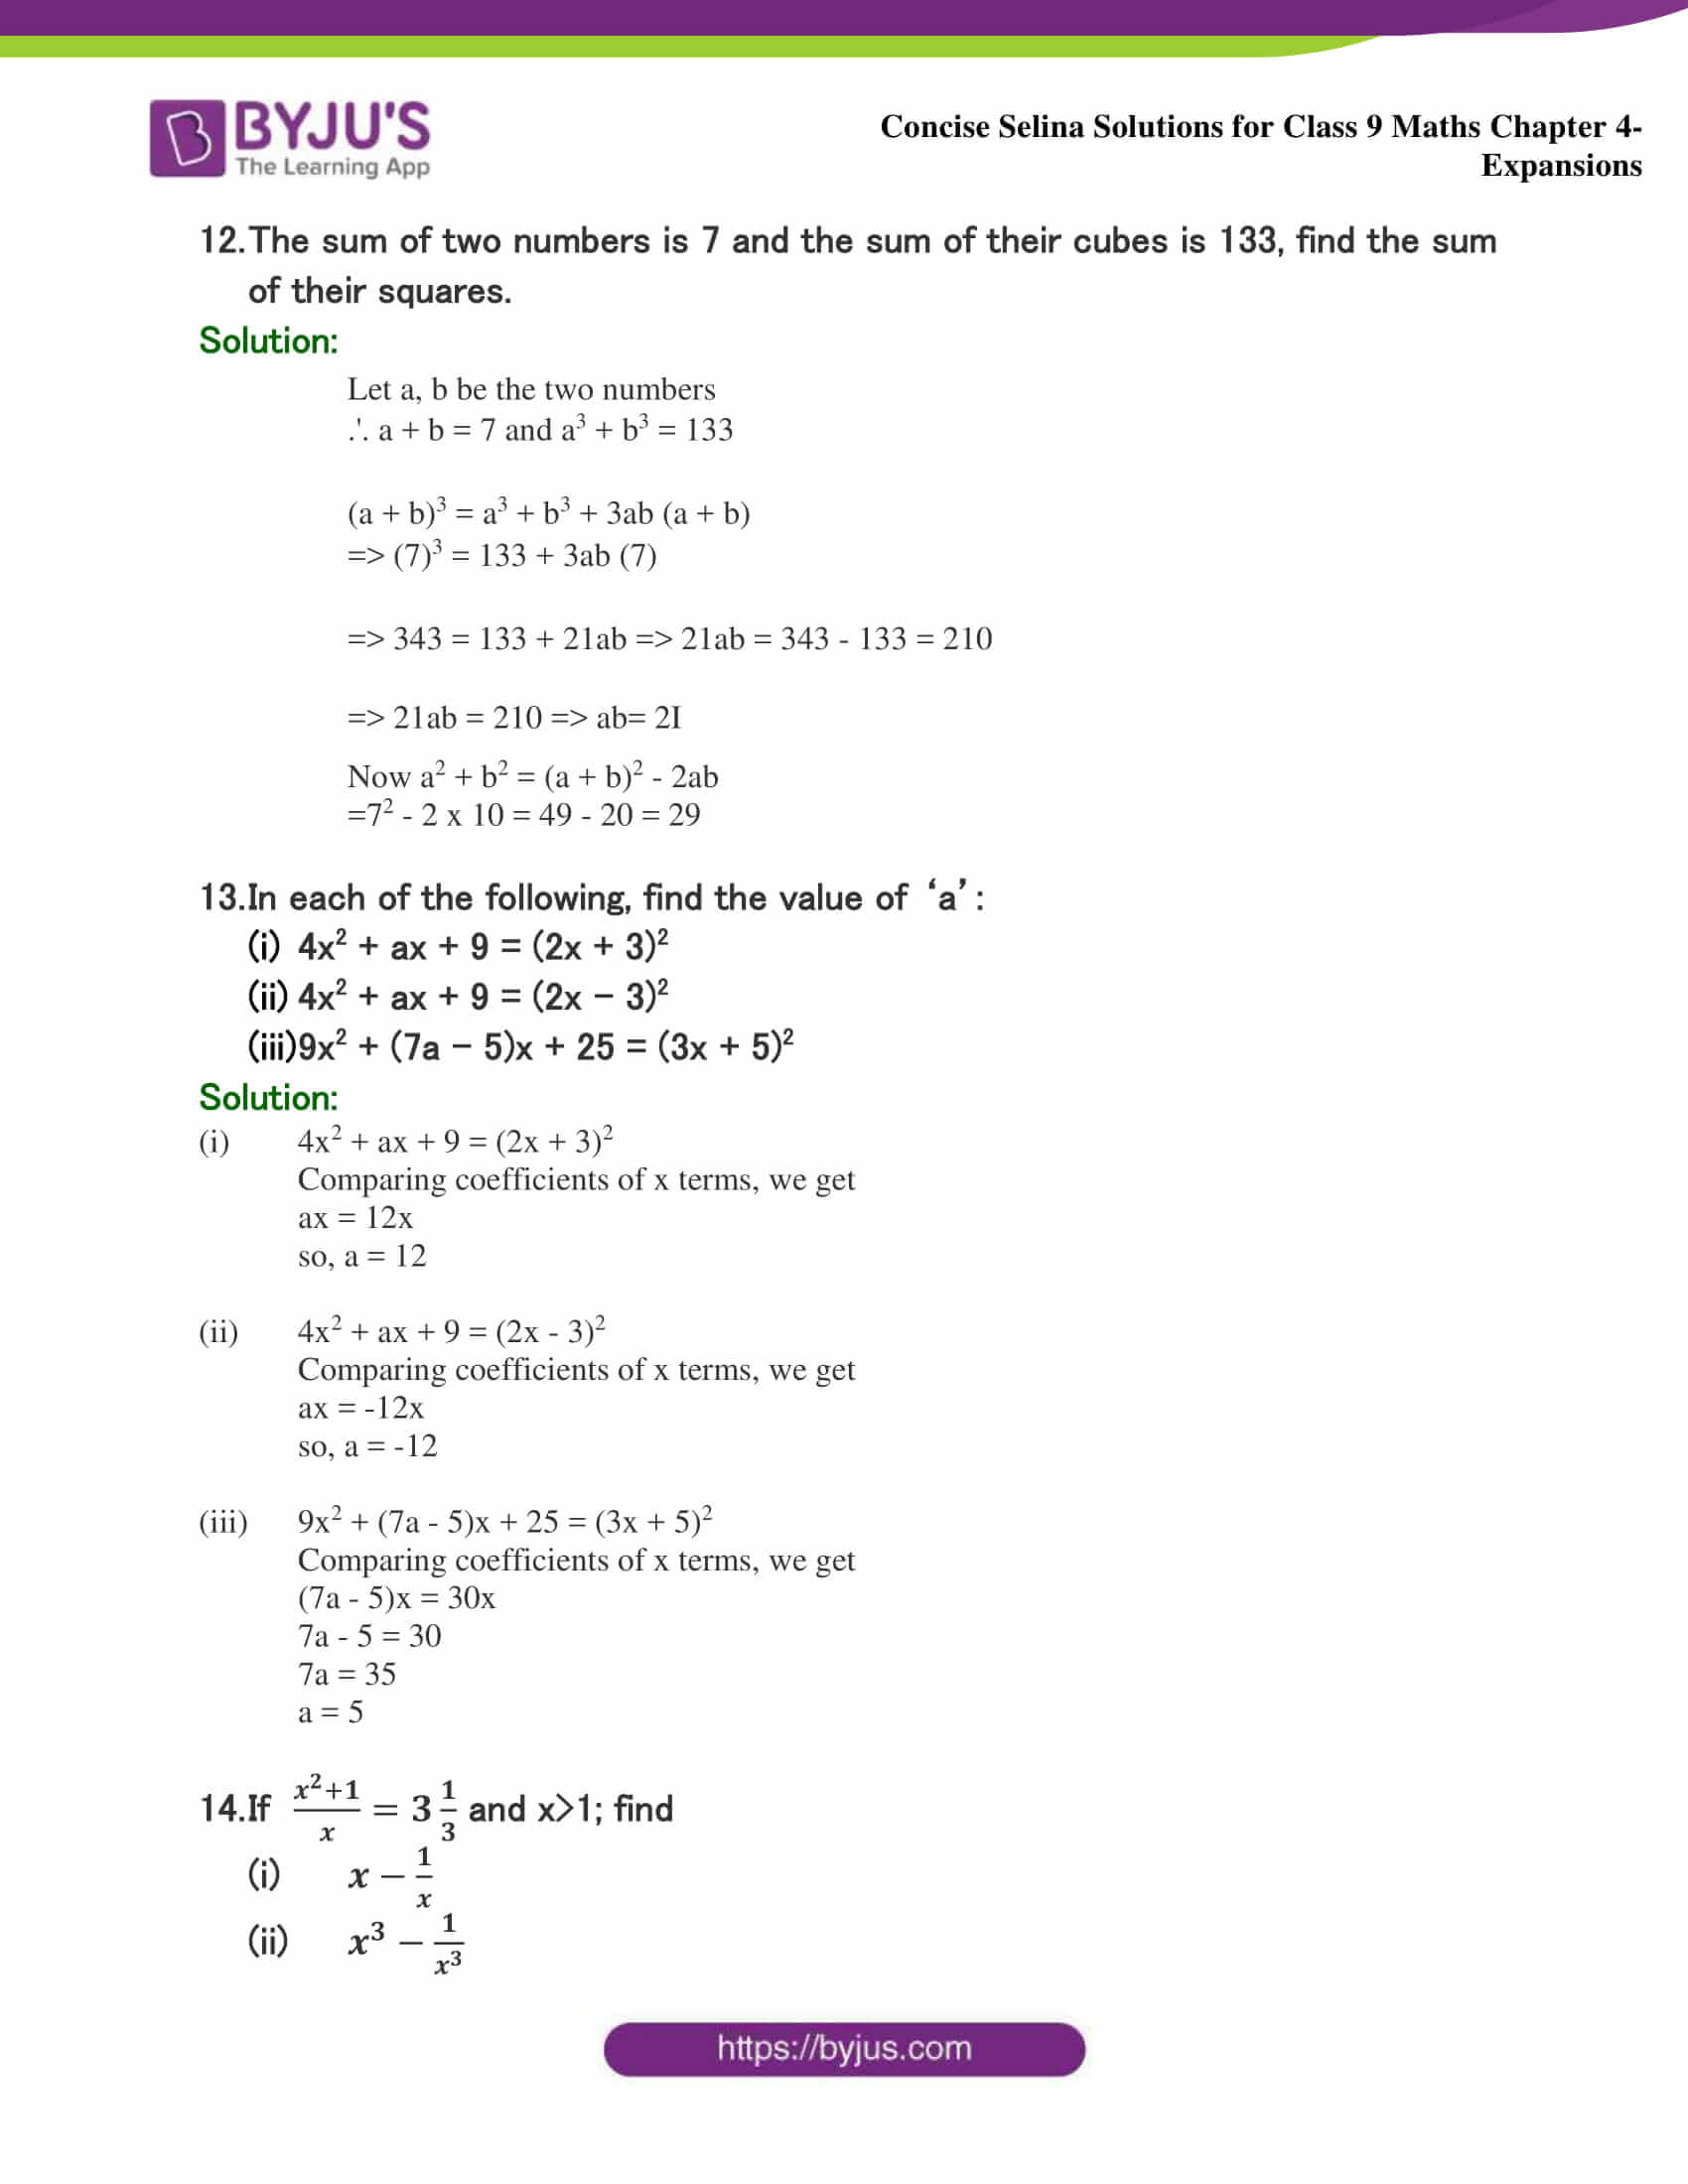 Selina Solutions Class 9 Maths Chapter 4 Expansions part 38